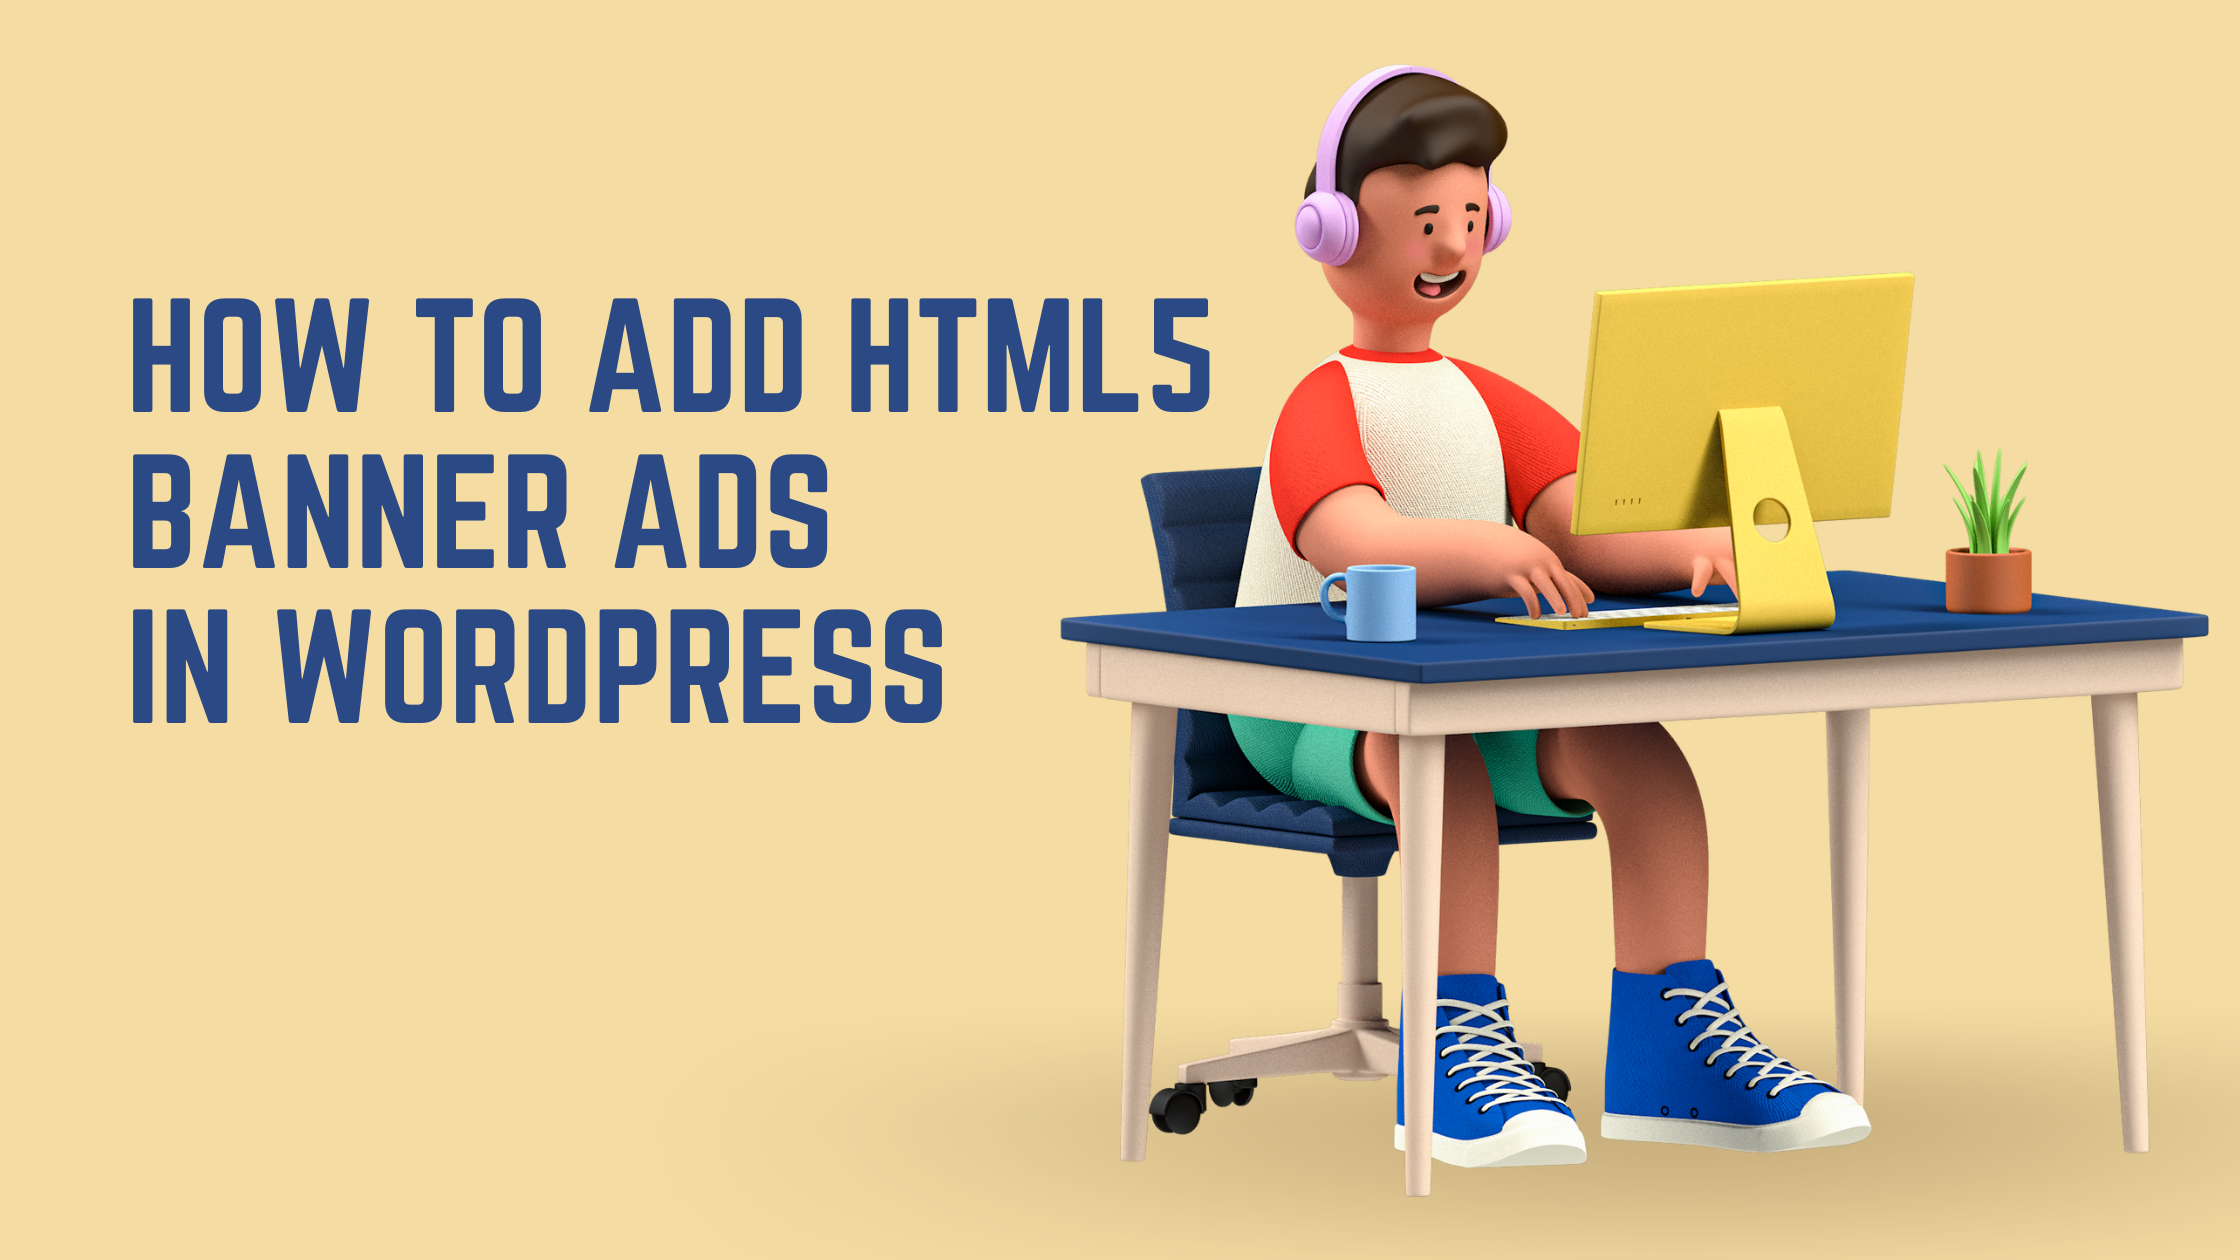 How to add HTML5 banner ads in WordPress